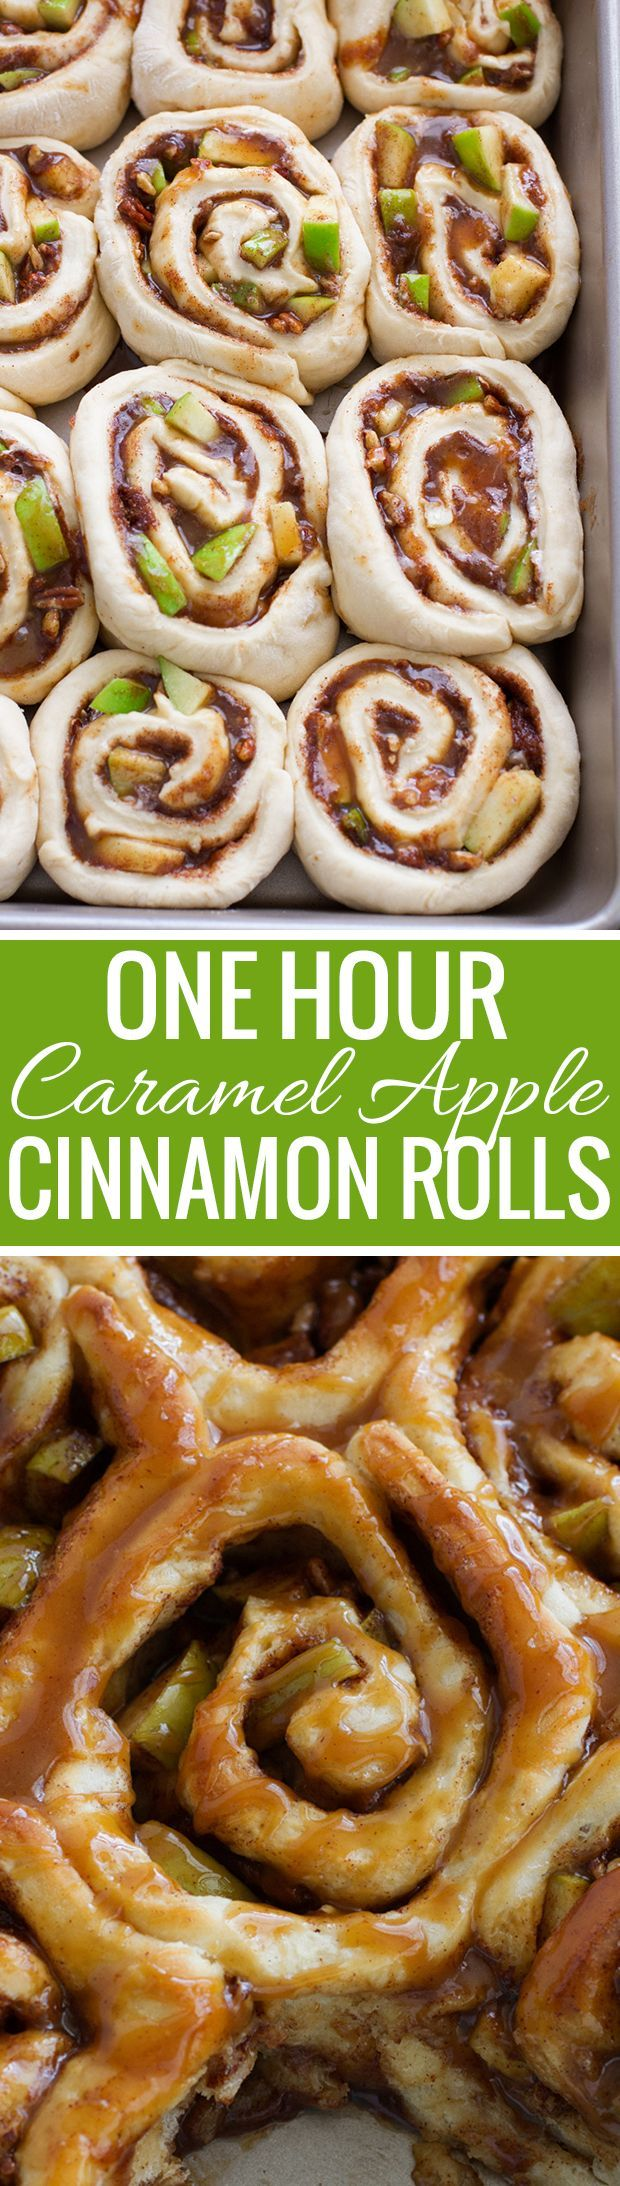 Caramel Apple Cinnamon Rolls - Ready in 1 Hour and so good! Perfect for apple season! #cinnamonrolls #onehourcinnamonrolls #breakfastrolls | http://Littlespicejar.com /littlespicejar/